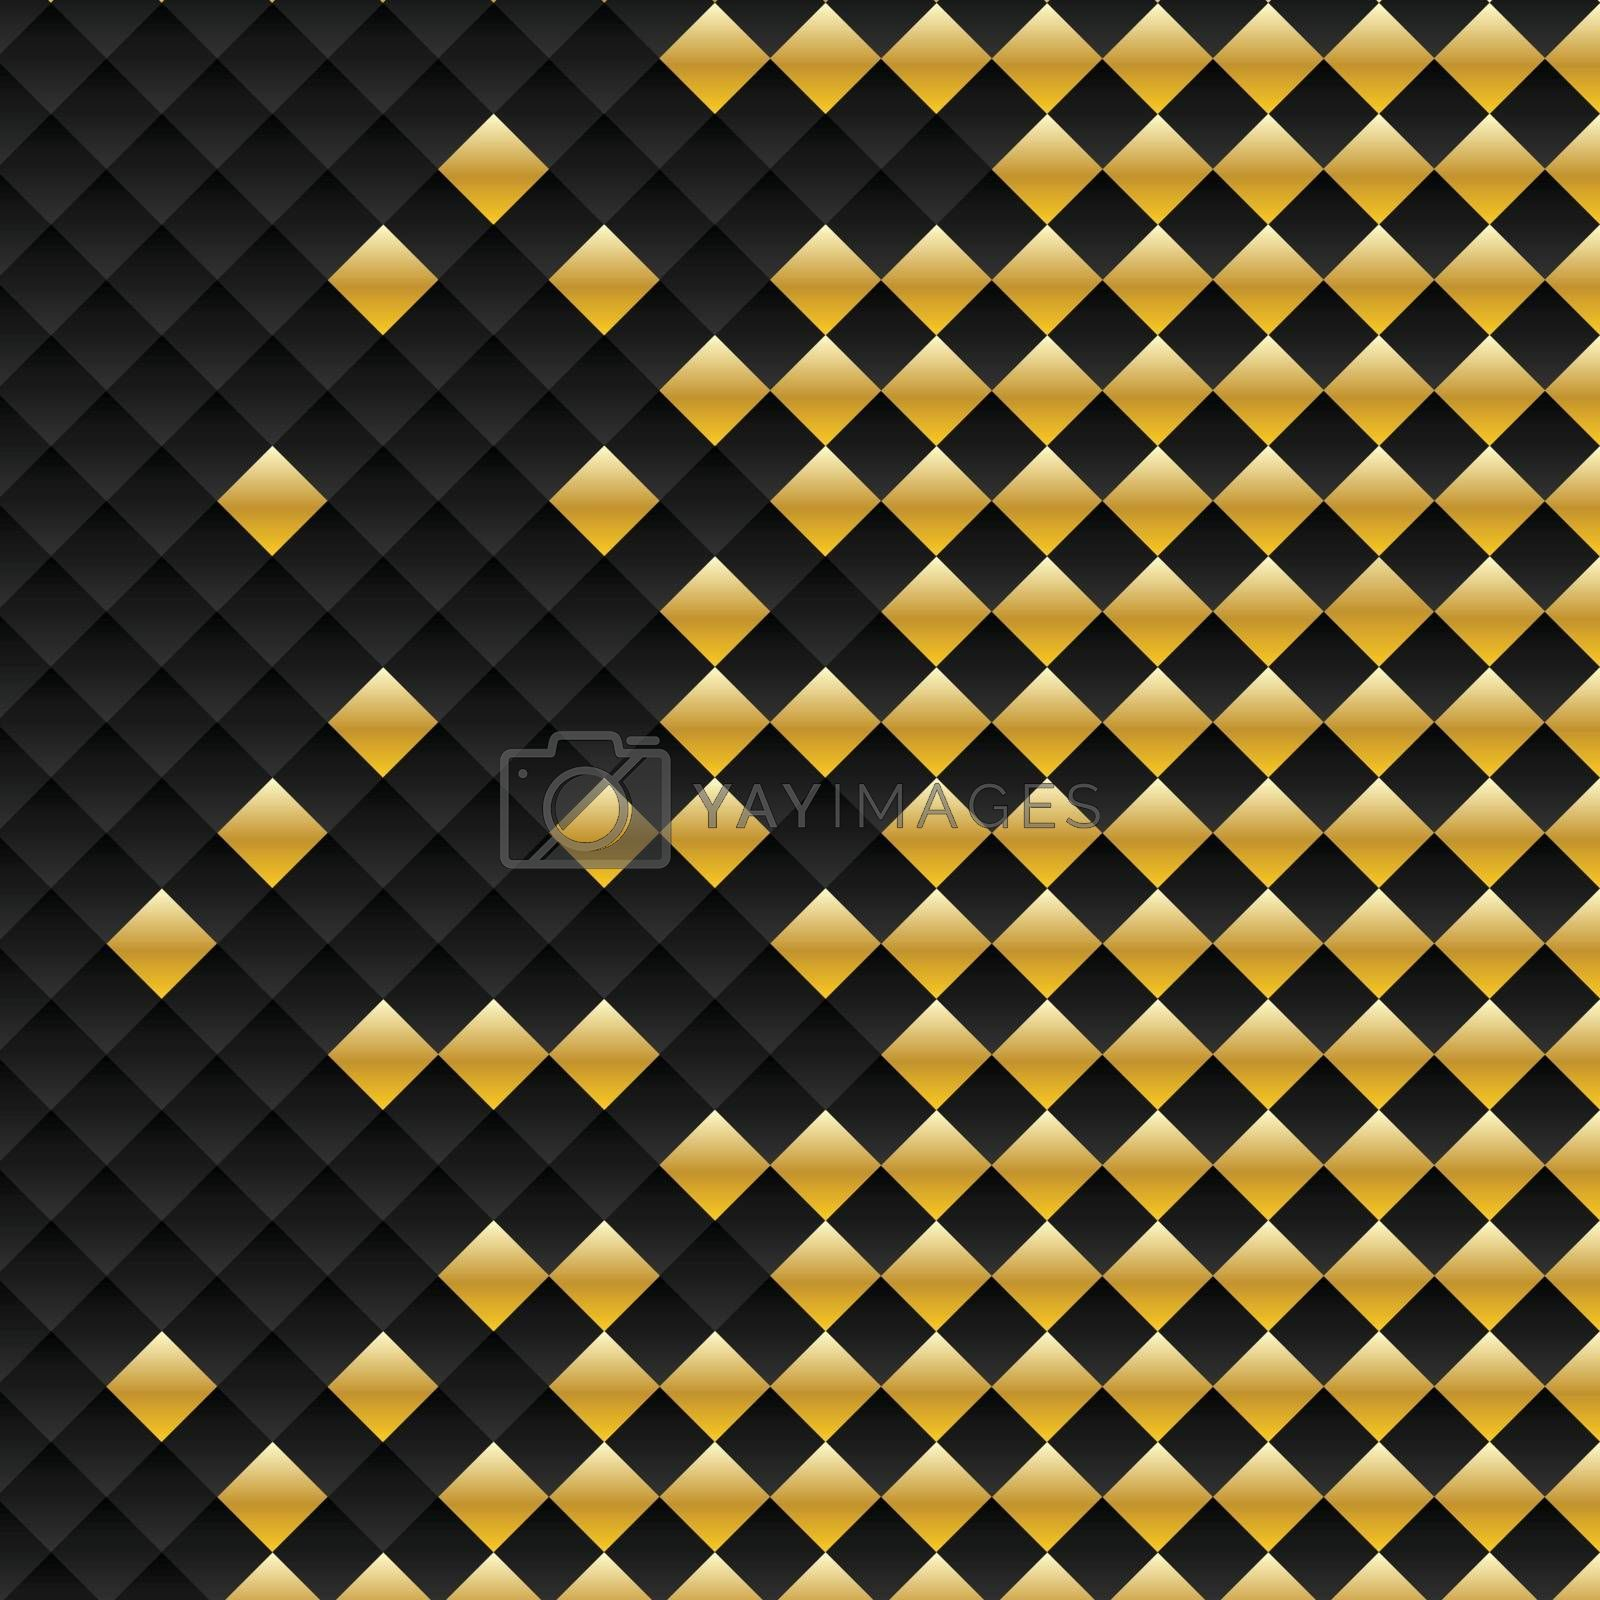 Vector black and gold square seamless pattern. Modern stylish texture. Repeating geometric tiles luxury background